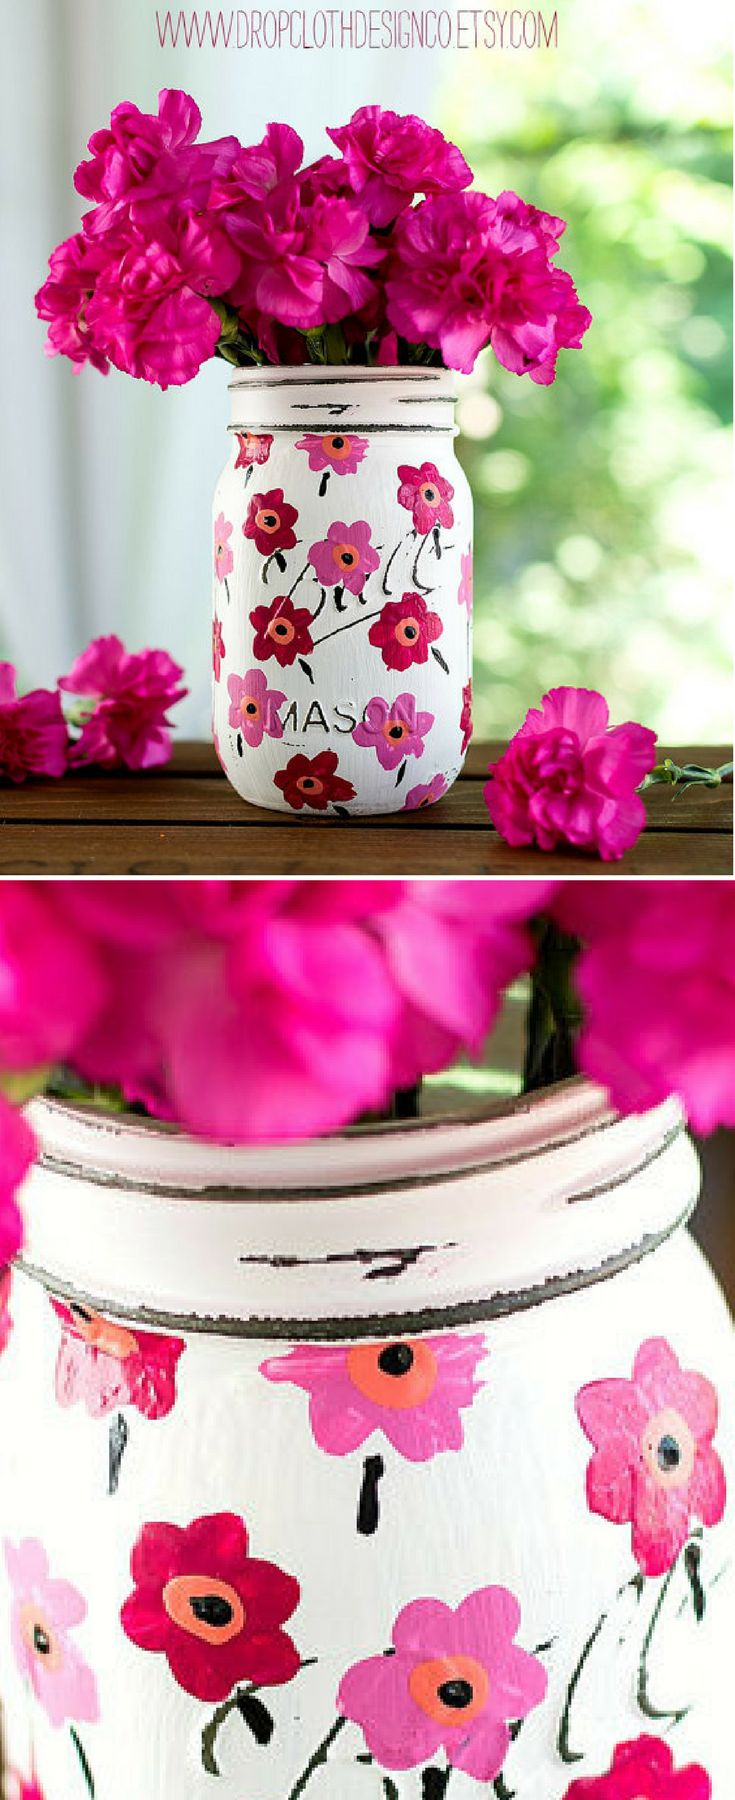 Pint-sized mason jar hand painted and distressed in white with pink Marimekko fabric iinspired flowers. Perfect gift idea for baby showers, weddings, Mother's Day, birthdays, Christmas and more. Pink Floral Centerpiece decor, Spring decor, Summer decor, dining room centerpiece Mason jar decor, Floral decor, rustic farmhouse home decor #ad